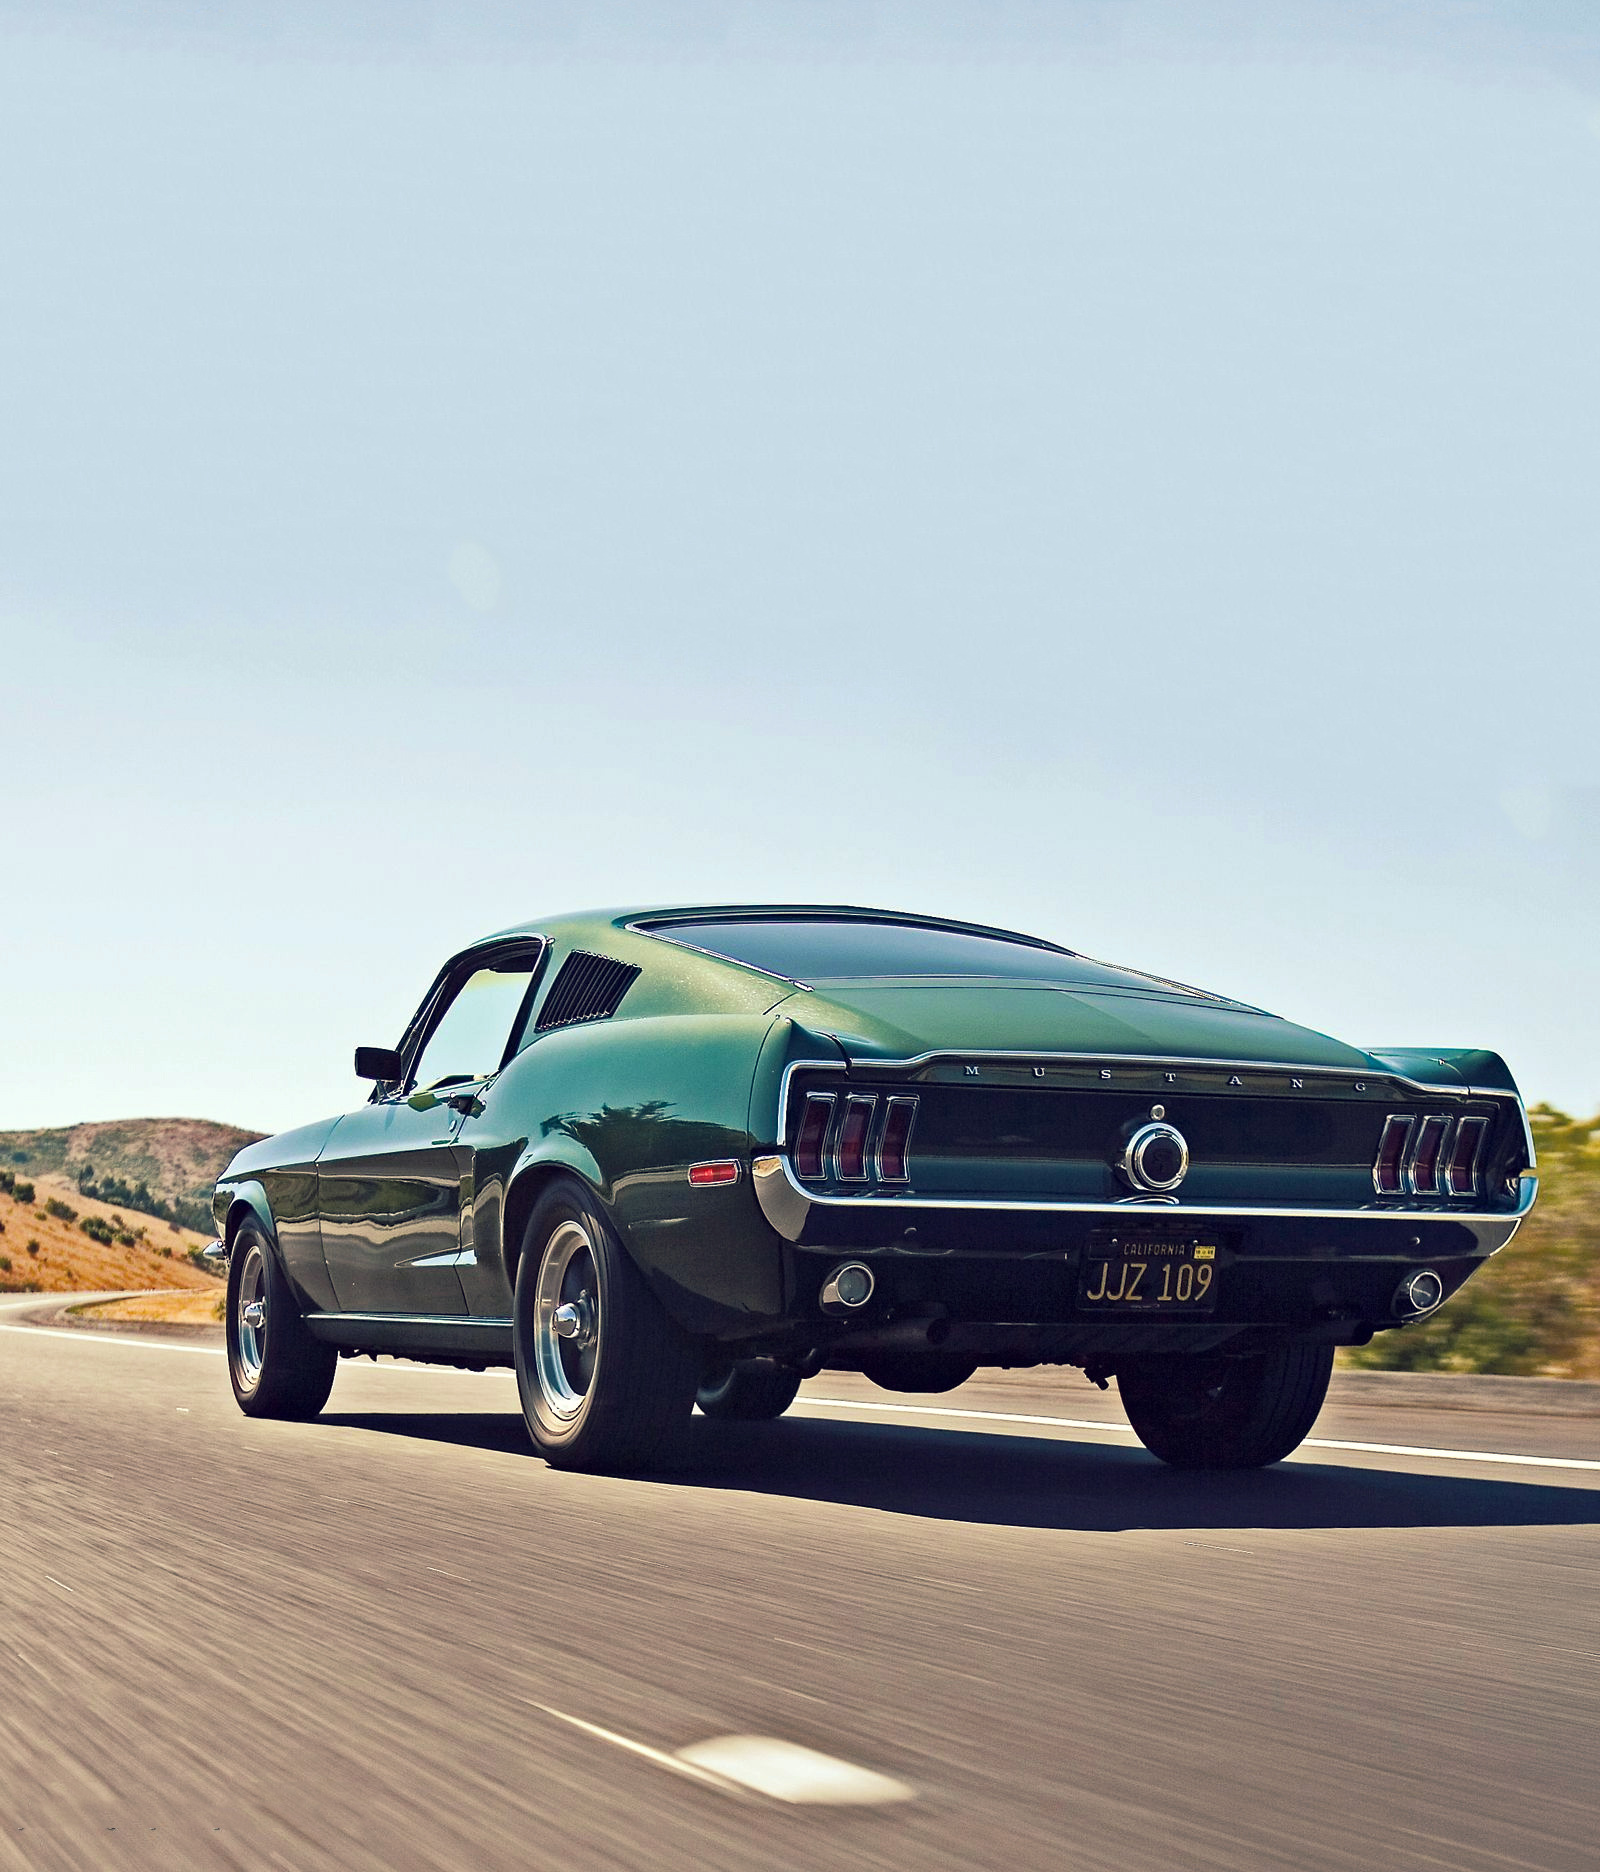 1968 ford mustang fastback someday my first car was 69 mach 1